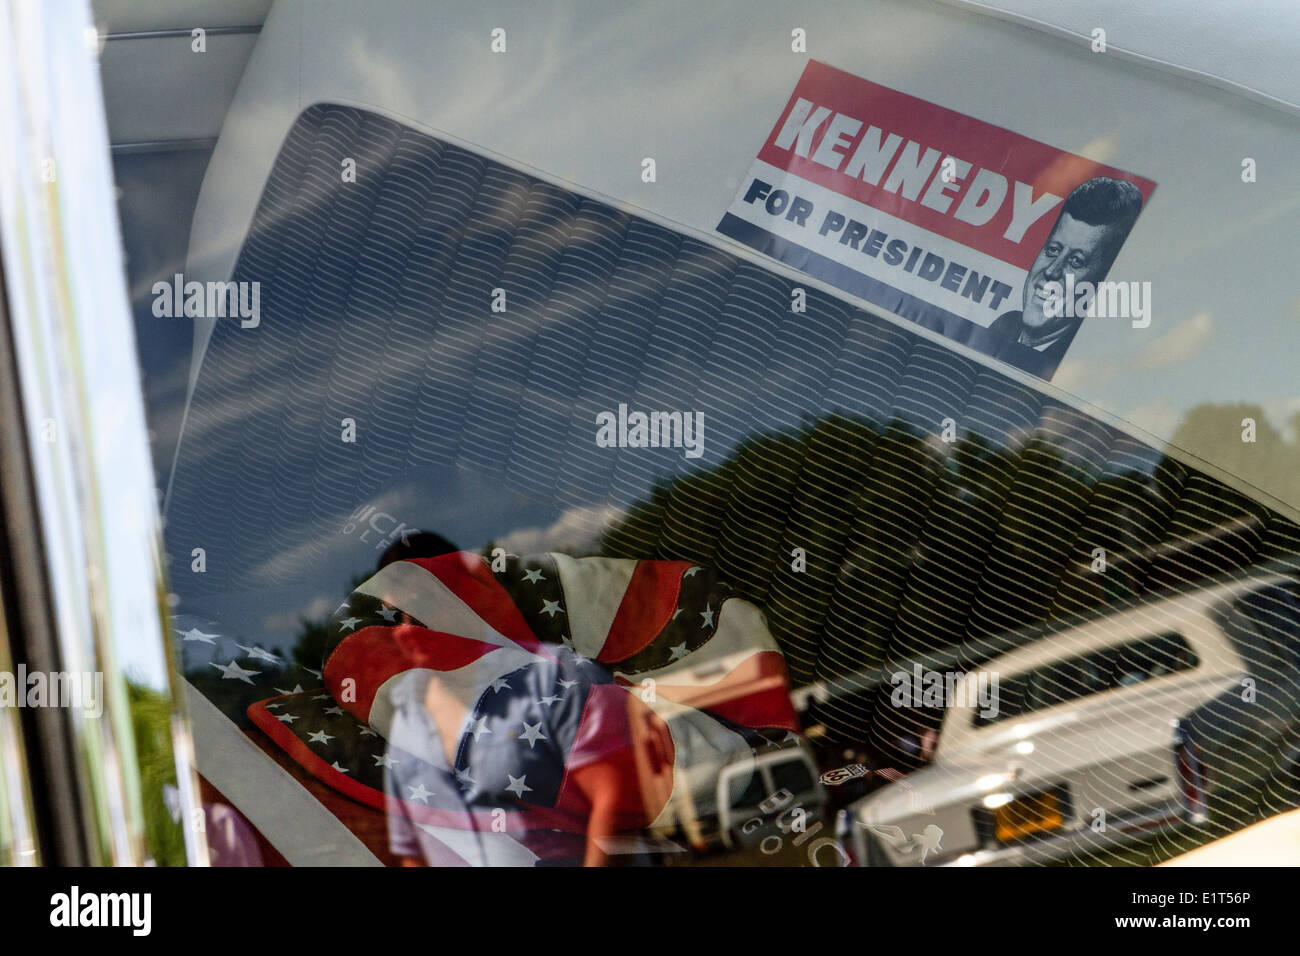 'Kennedy For President' campaign sticker in back of American car at classic car show - Stock Image